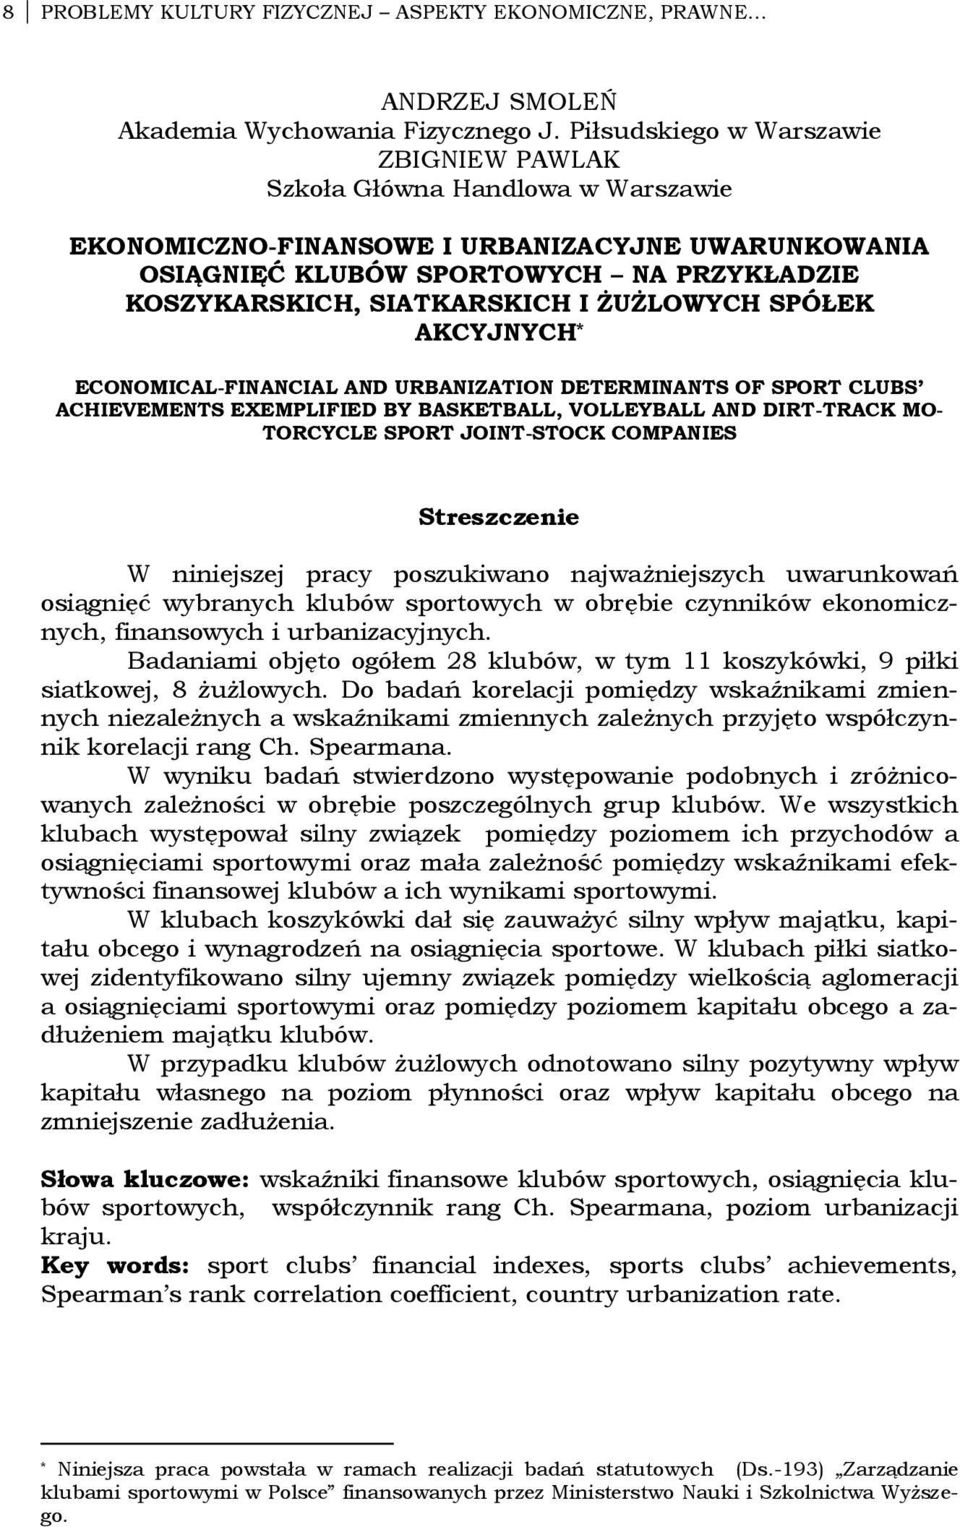 ŻUŻLOWYCH SPÓŁEK AKCYJNYCH * ECONOMICALFINANCIAL AND URBANIZATION DETERMINANTS OF SPORT CLUBS ACHIEVEMENTS EXEMPLIFIED BY BASKETBALL, VOLLEYBALL AND DIRTTRACK MO TORCYCLE SPORT JOINTSTOCK COMPANIES